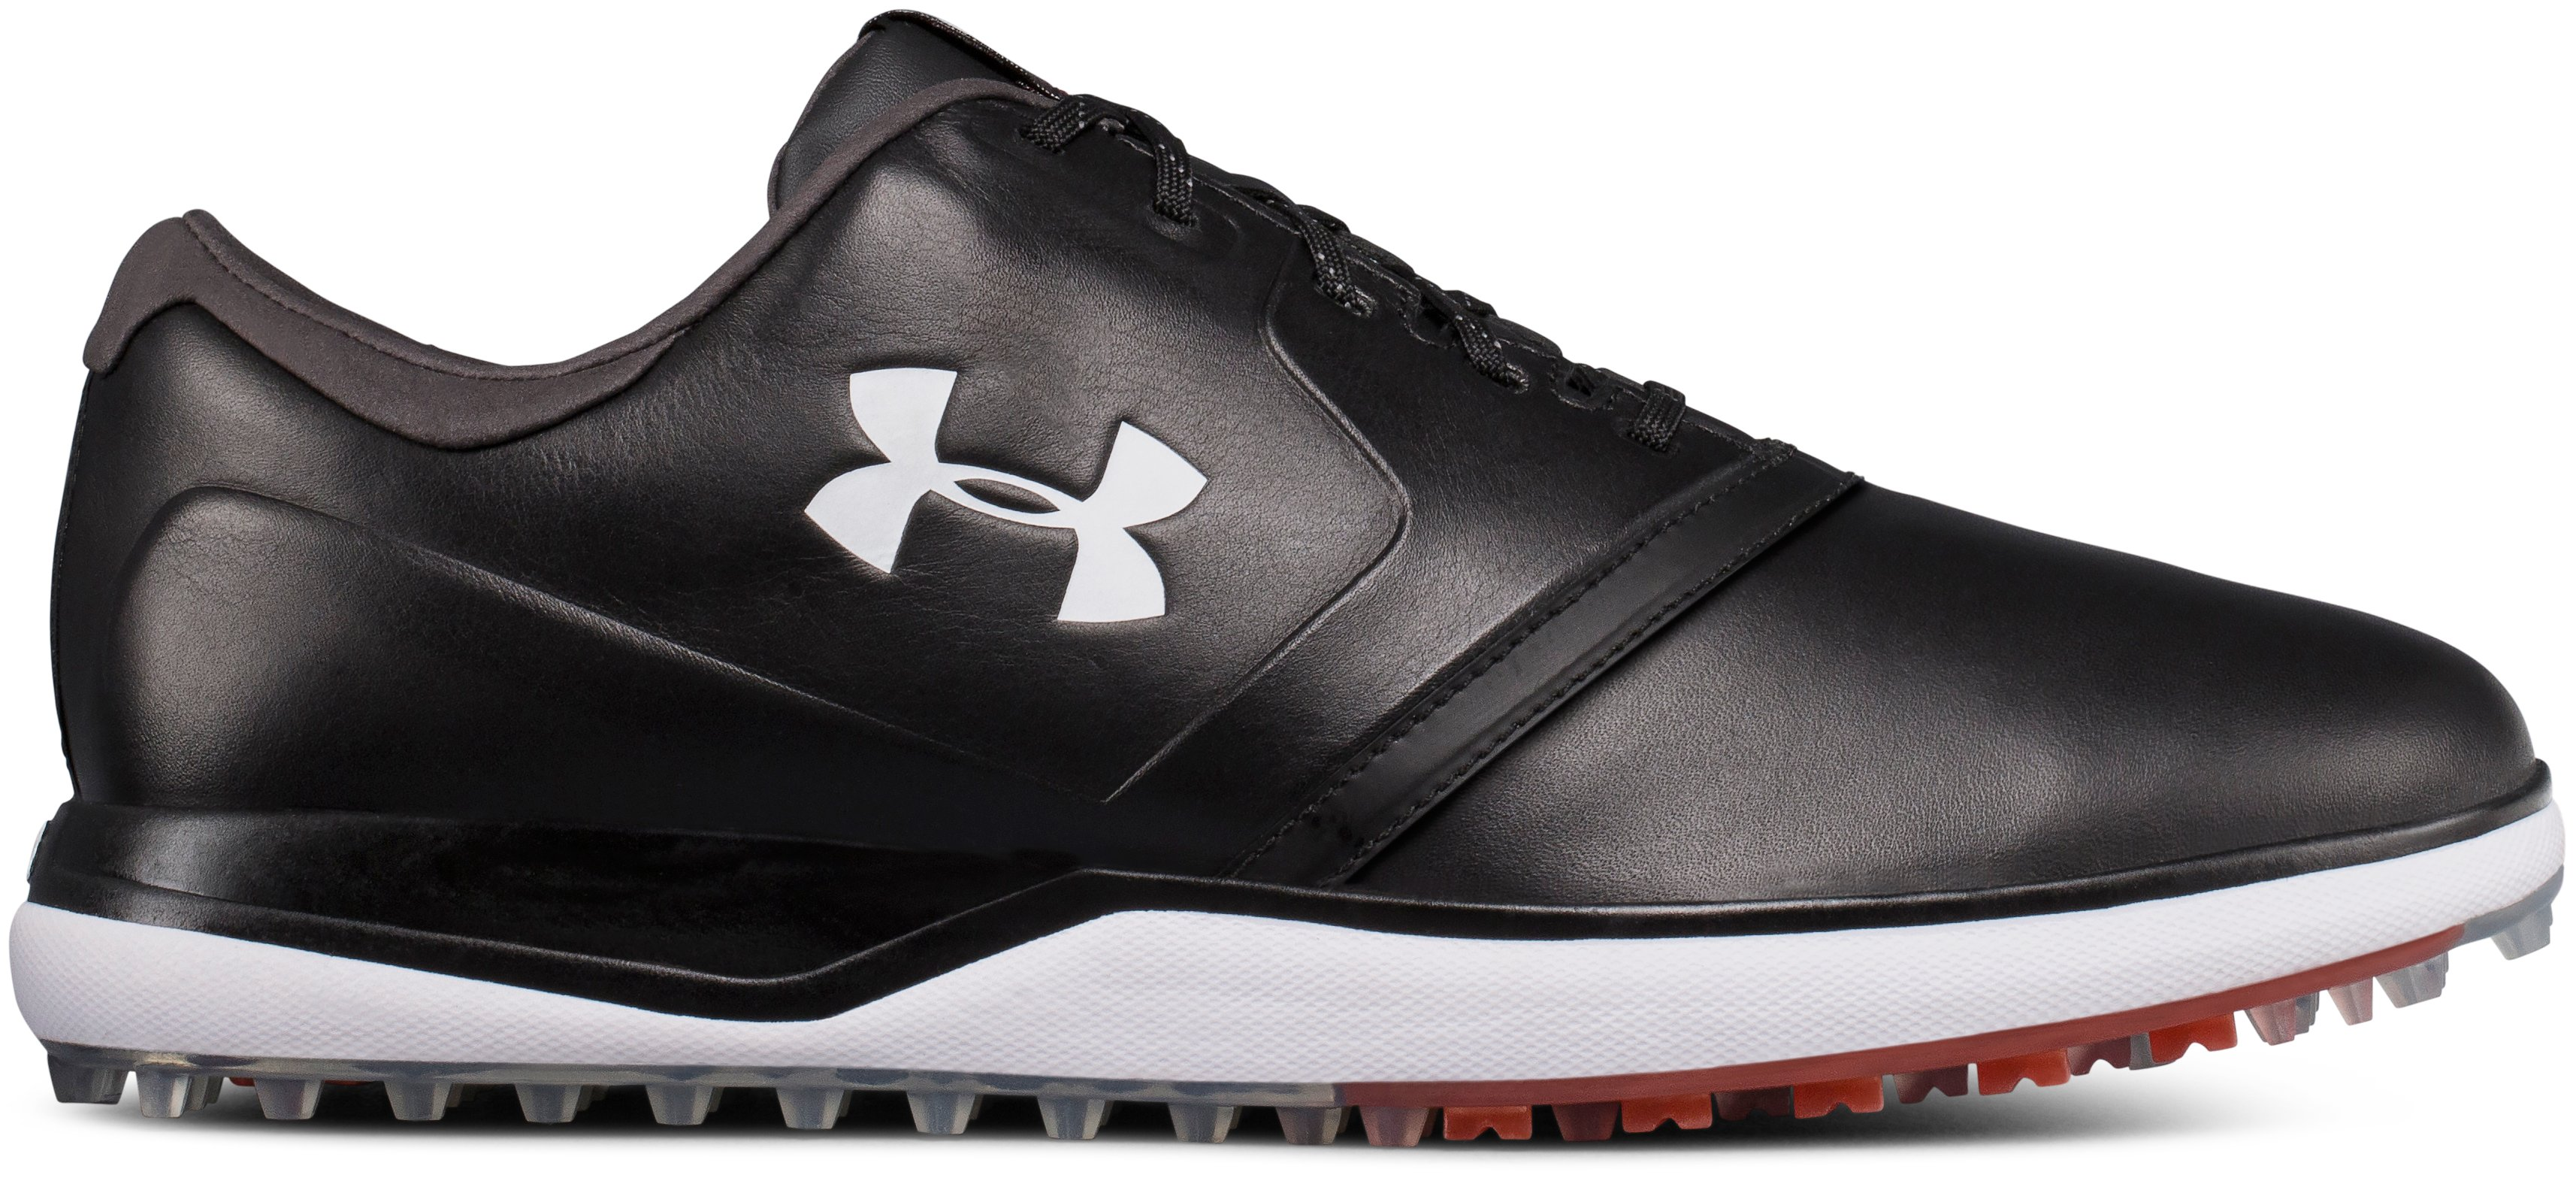 Men's UA Performance SL Leather Spikeless Golf Shoes, 360 degree view